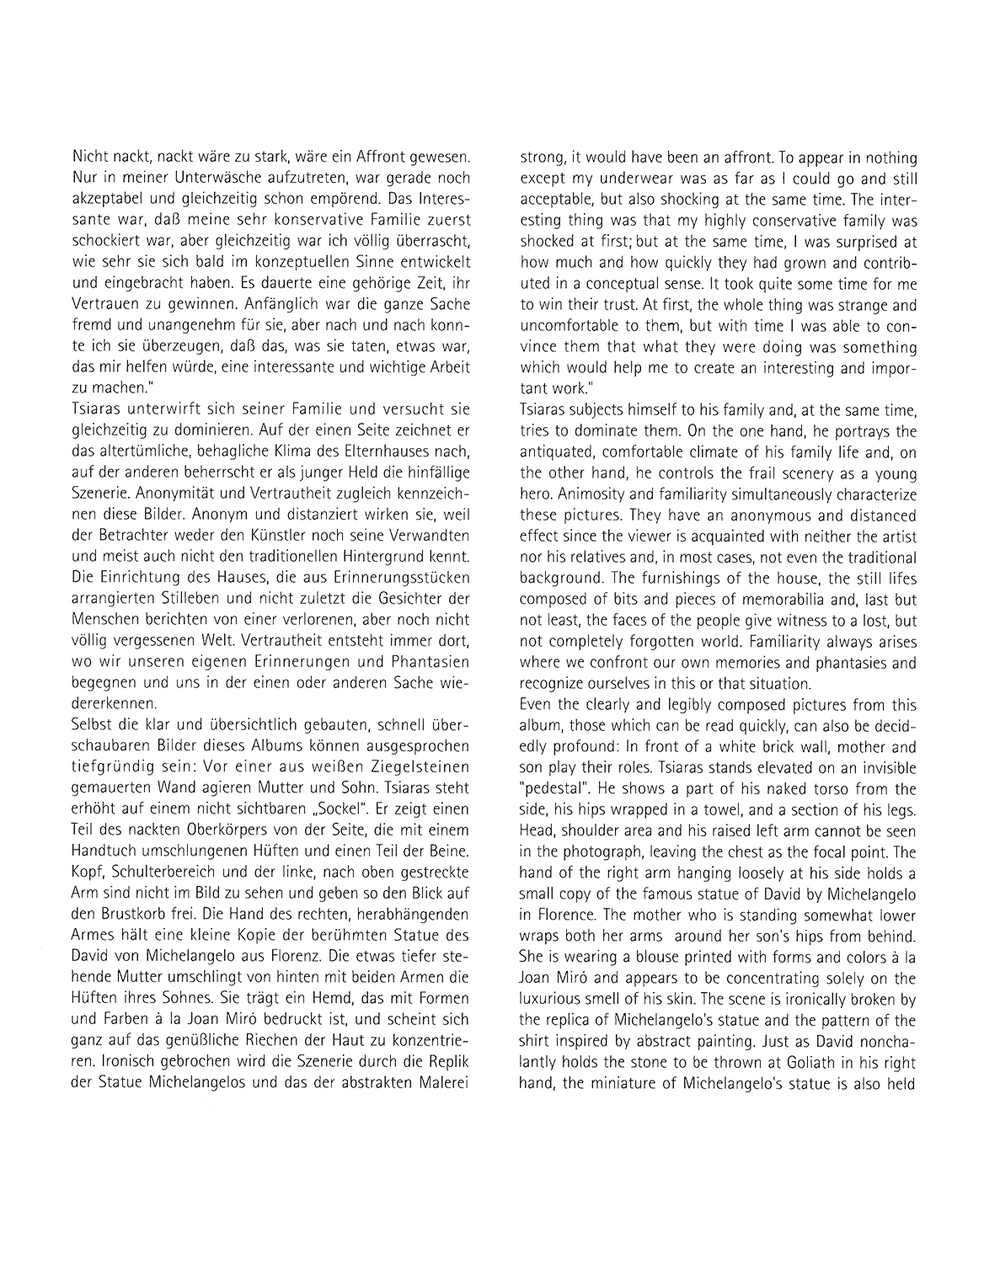 international-photo-pg4.jpg